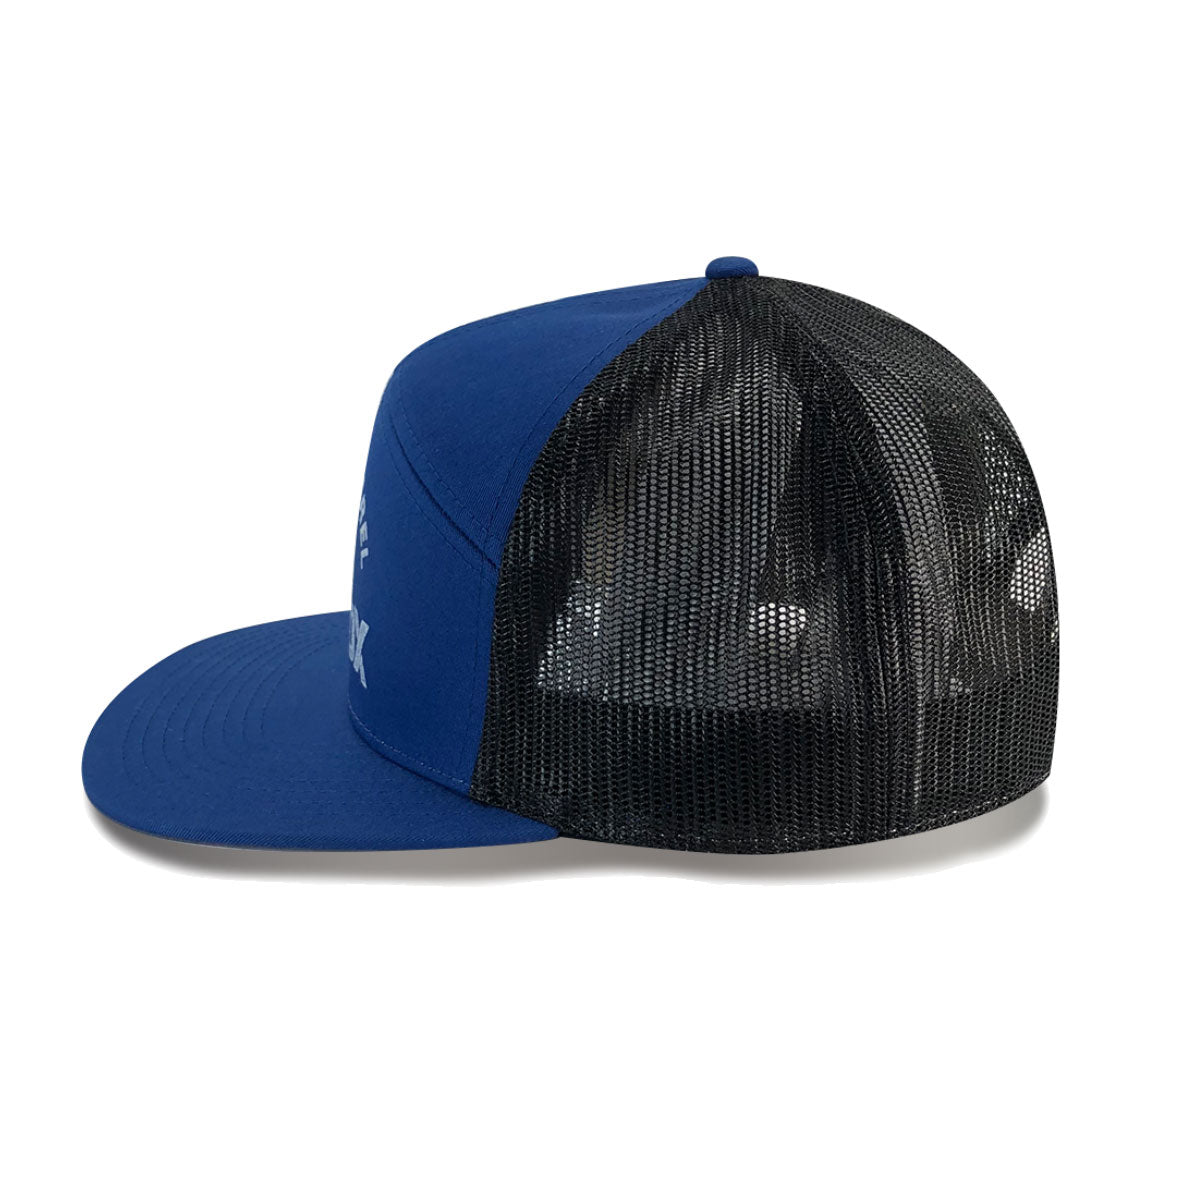 Outlaw Flatty Snapback Hat